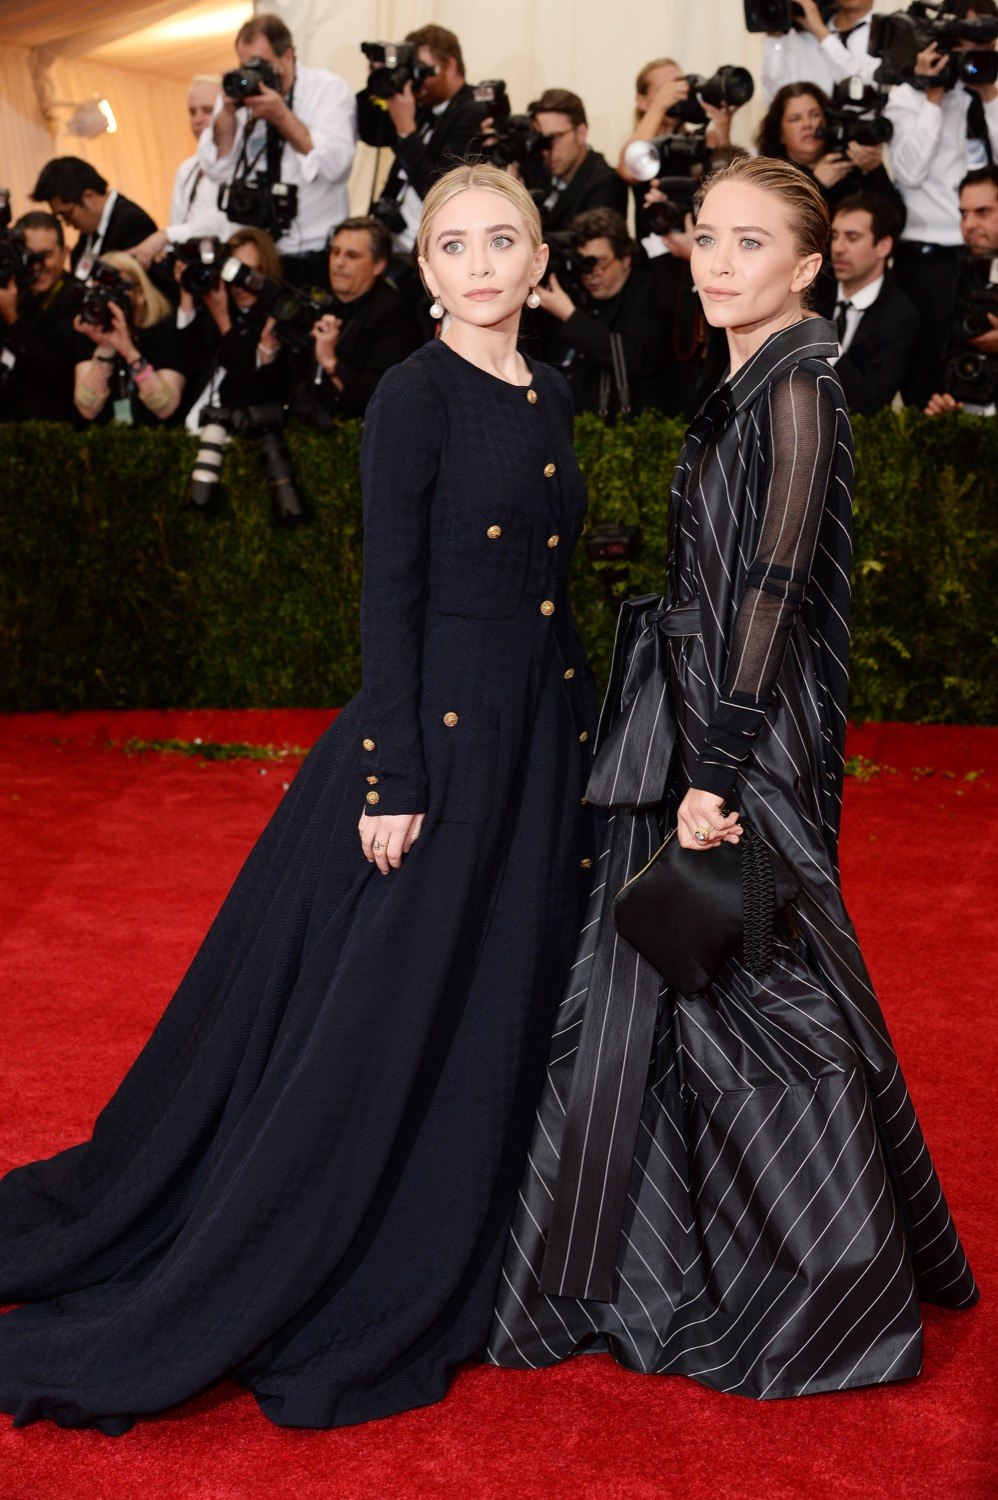 We Break Down the Olsen Twins' Style (Hint: There's Black Involved)